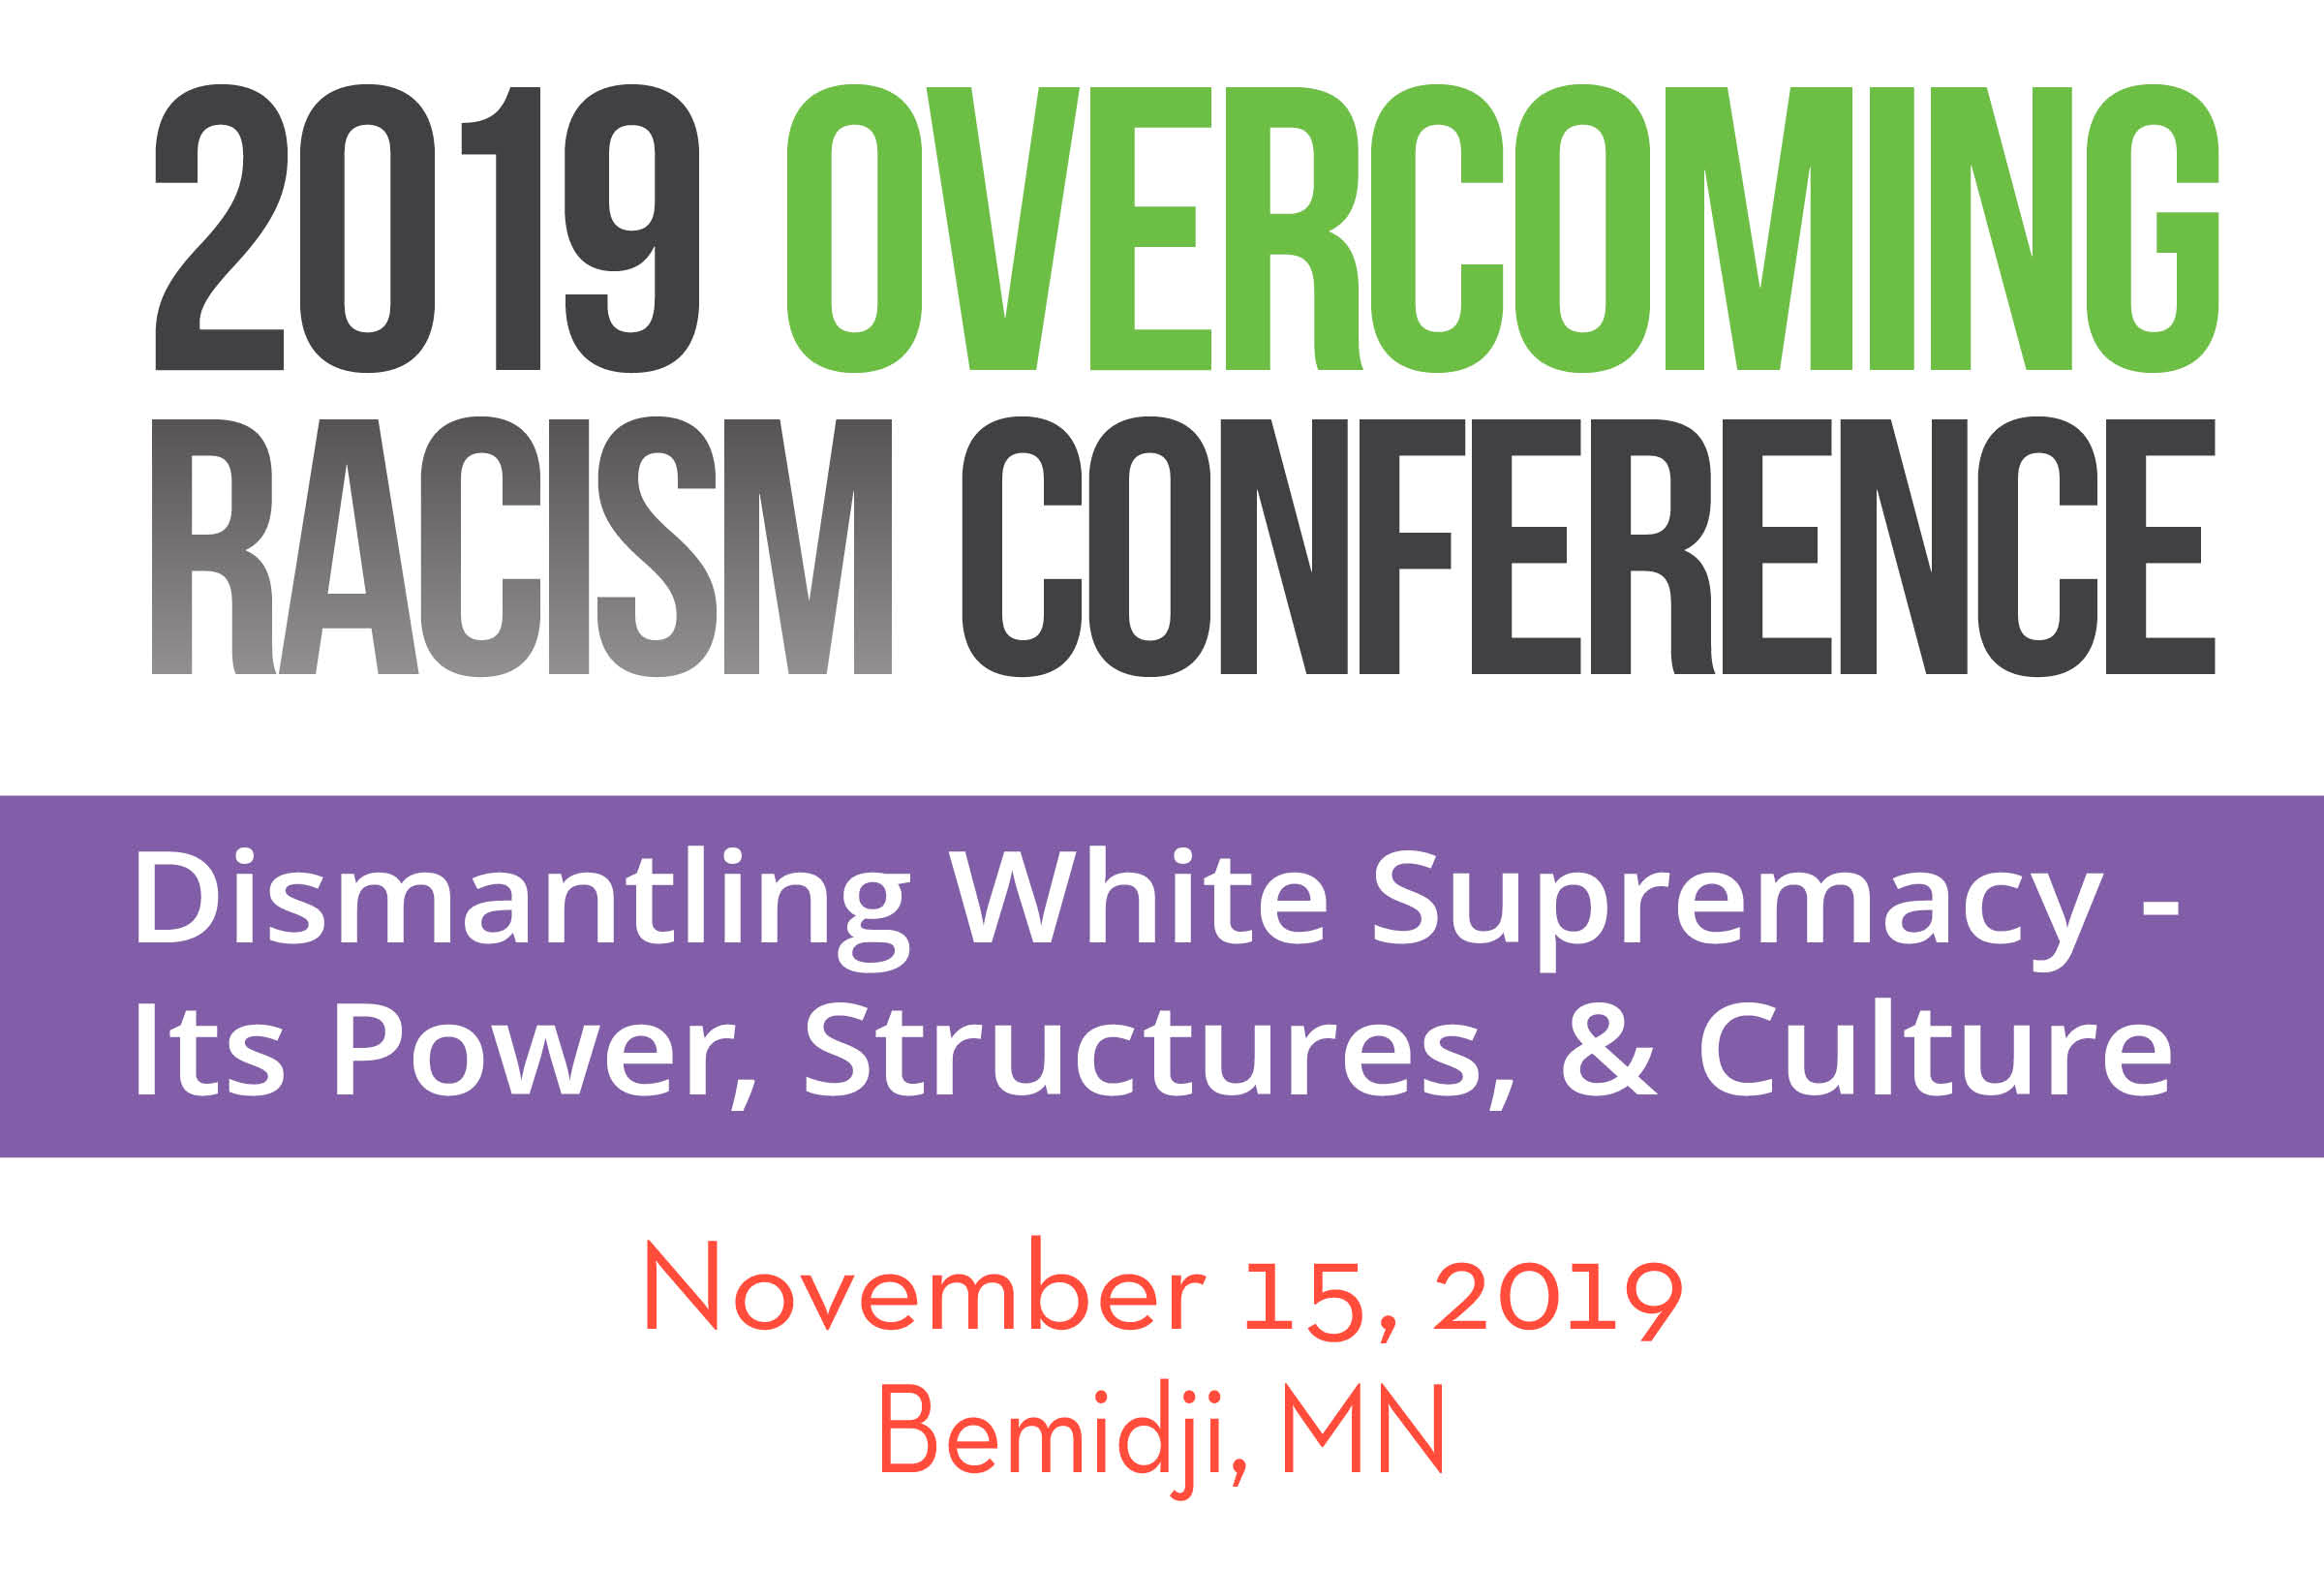 2019 Bemidji Overcoming Racism Conference Banner